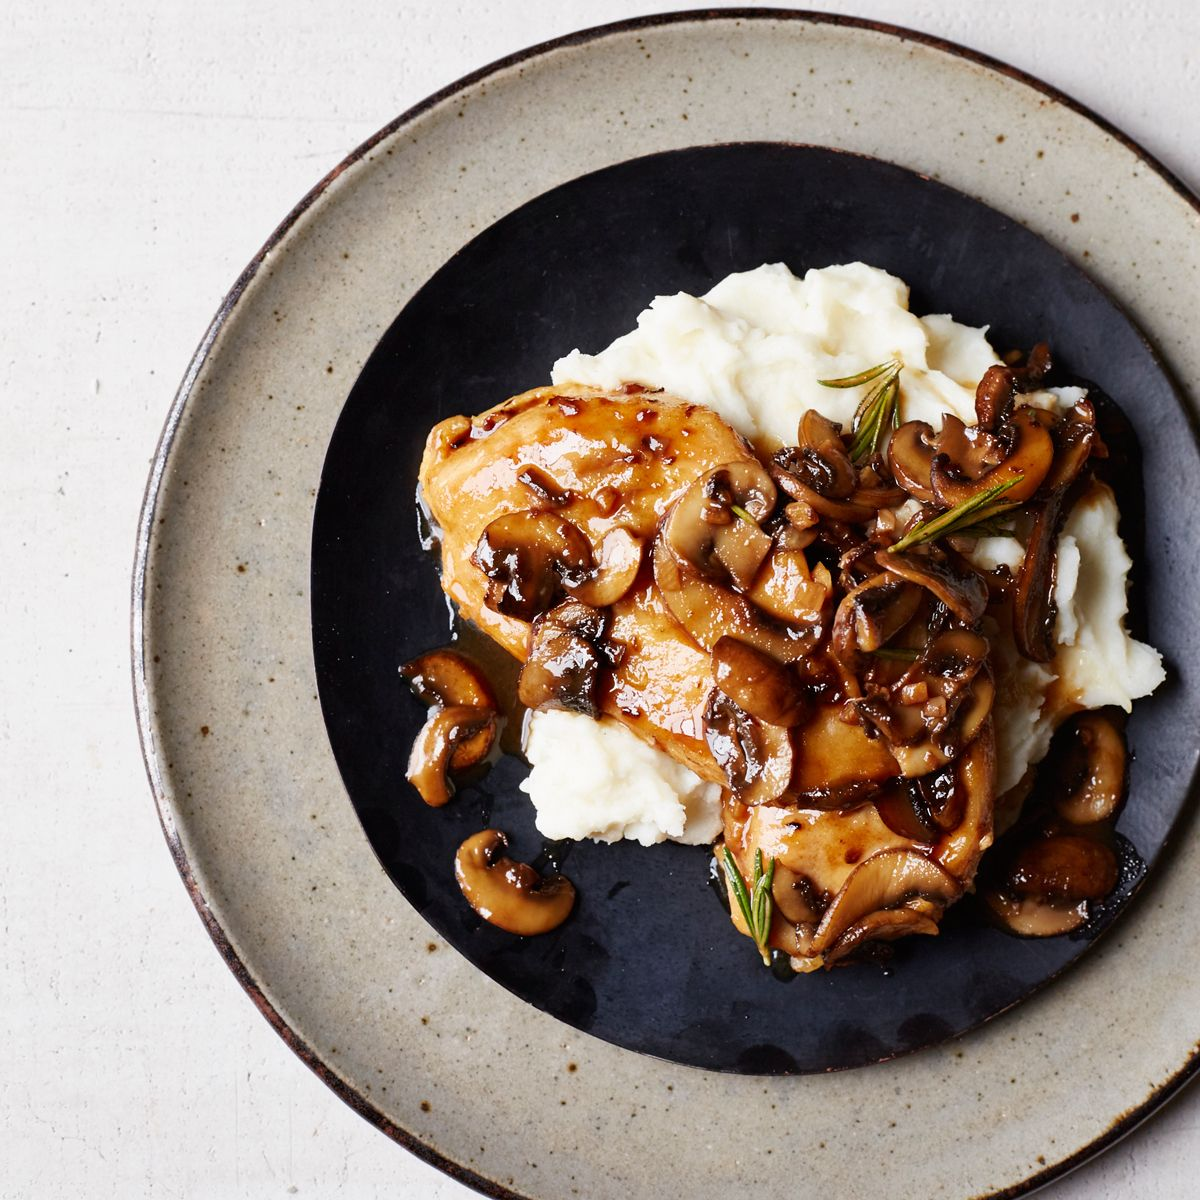 Chicken Marsala is a traditional Italian-American dish prepared with chicken cutlets, mushrooms and Marsala wine. Get the recipe at foodandwine.com.